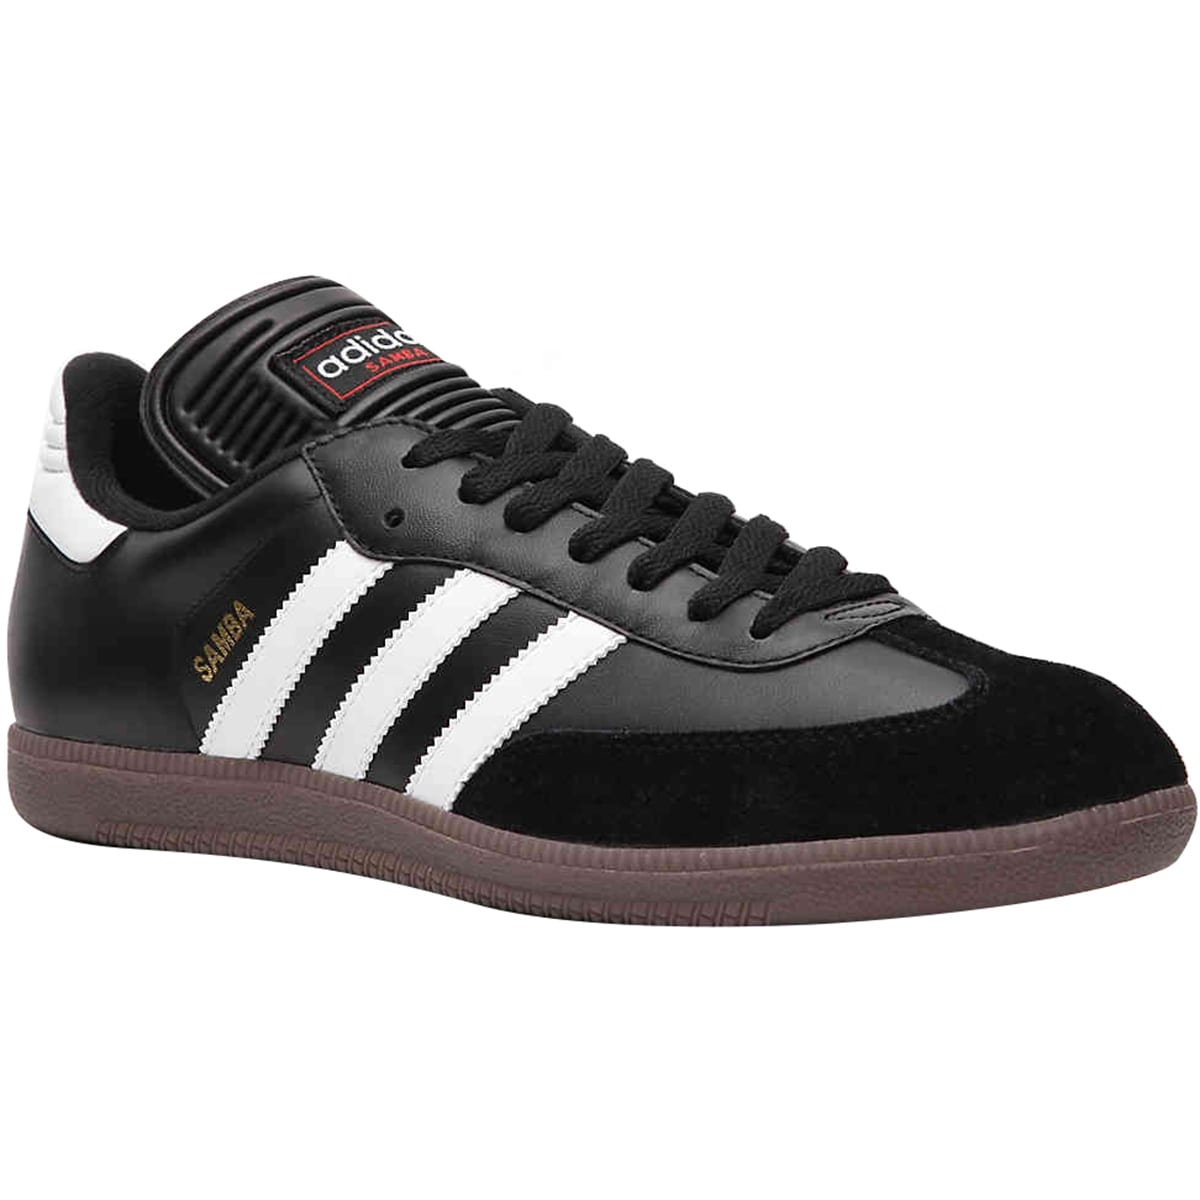 6f0dad2b633 Shop Adidas Samba Classic Leather Indoor Soccer Shoes - Black White ...